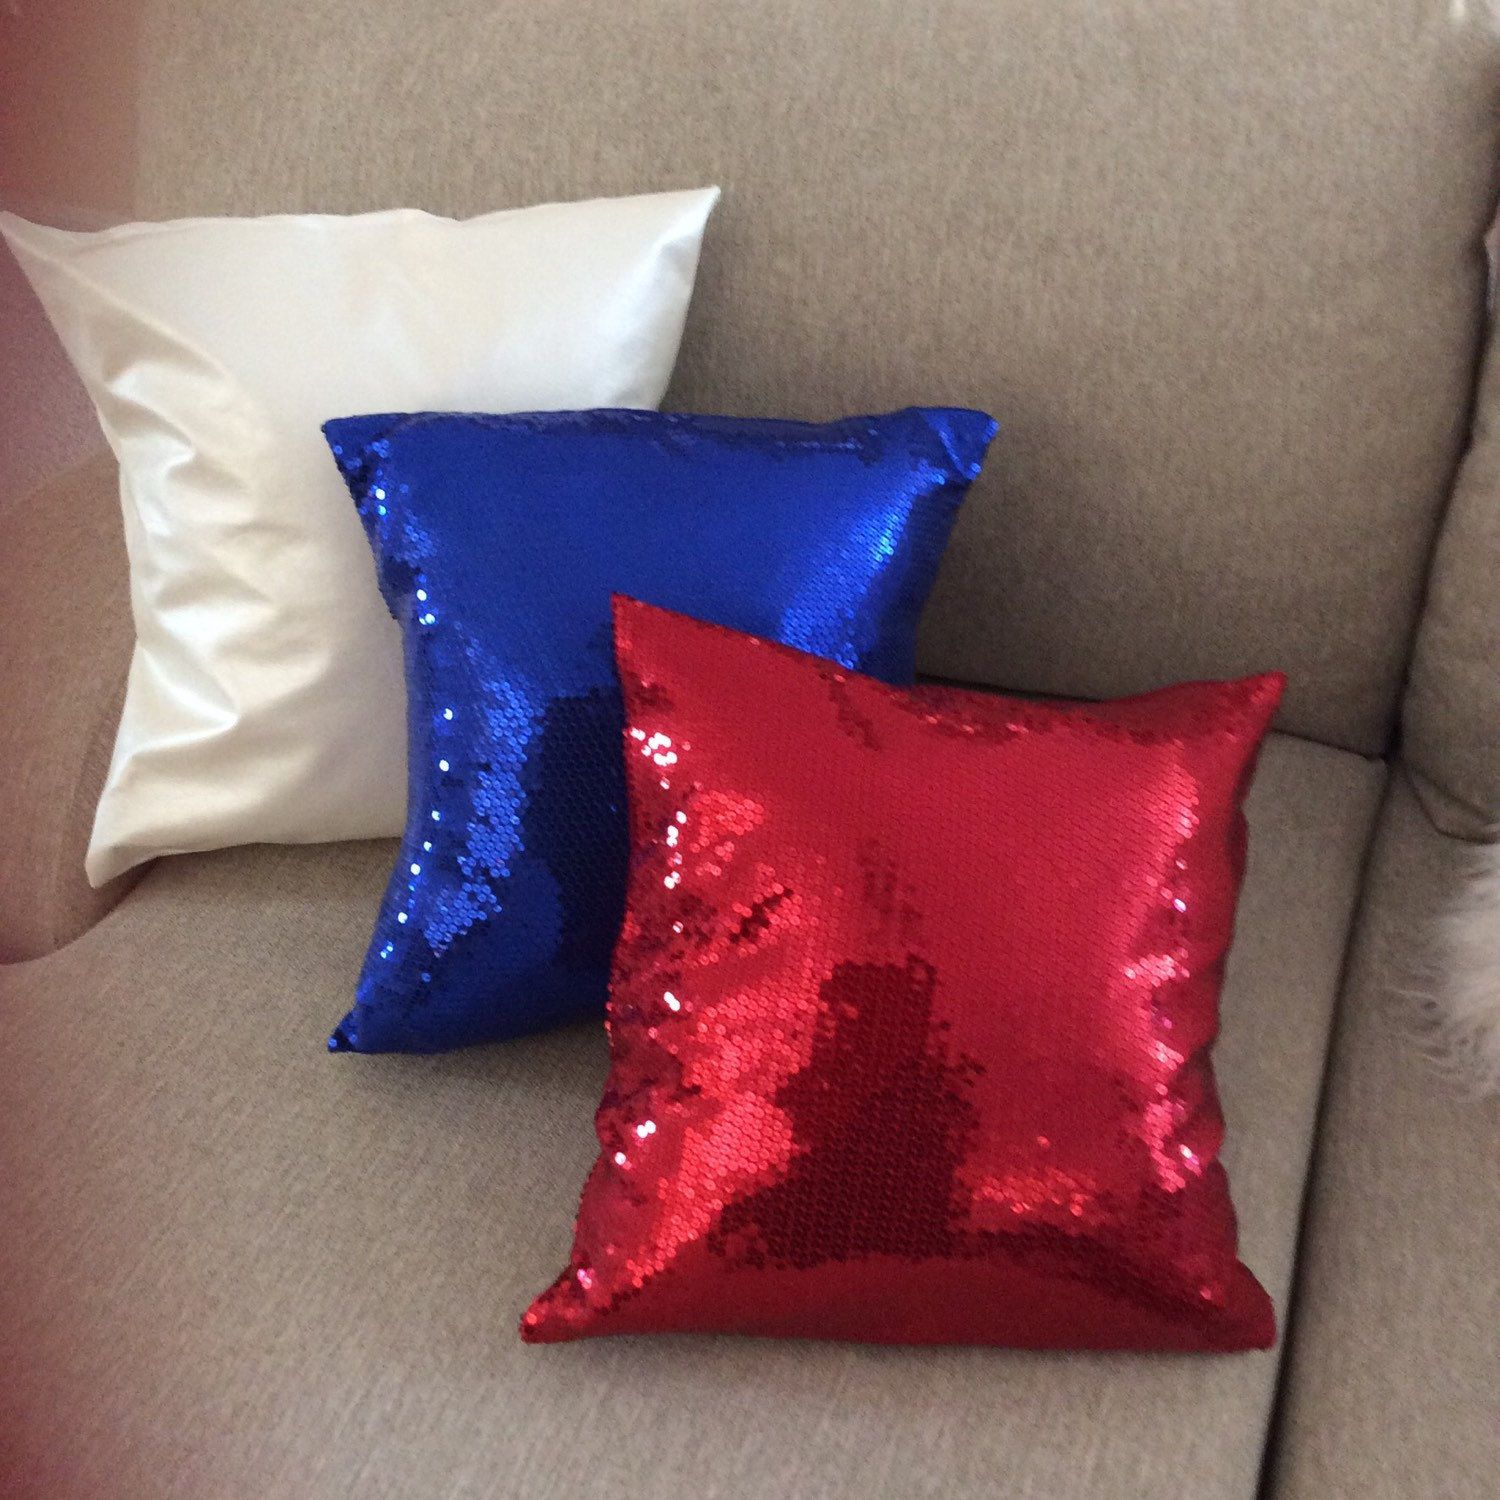 covers merry to cushion gifts pillow every christmas on blanket sale throw inch pillows gallery